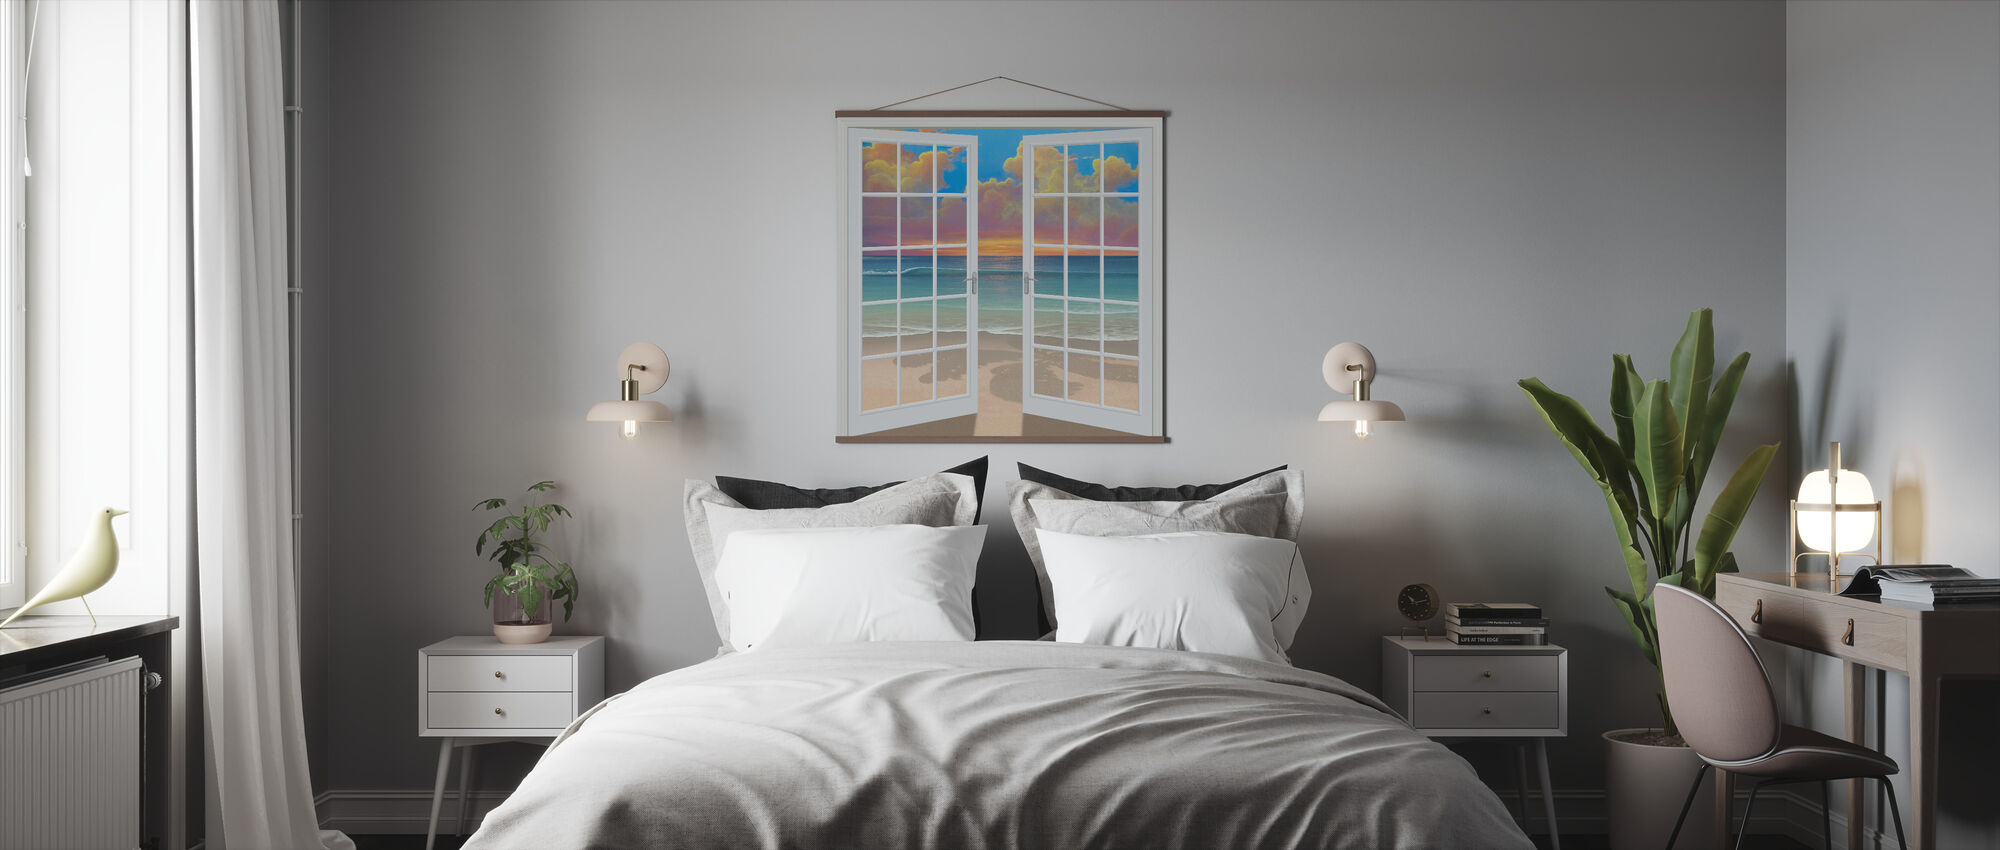 Sunset Through Window - Poster - Bedroom